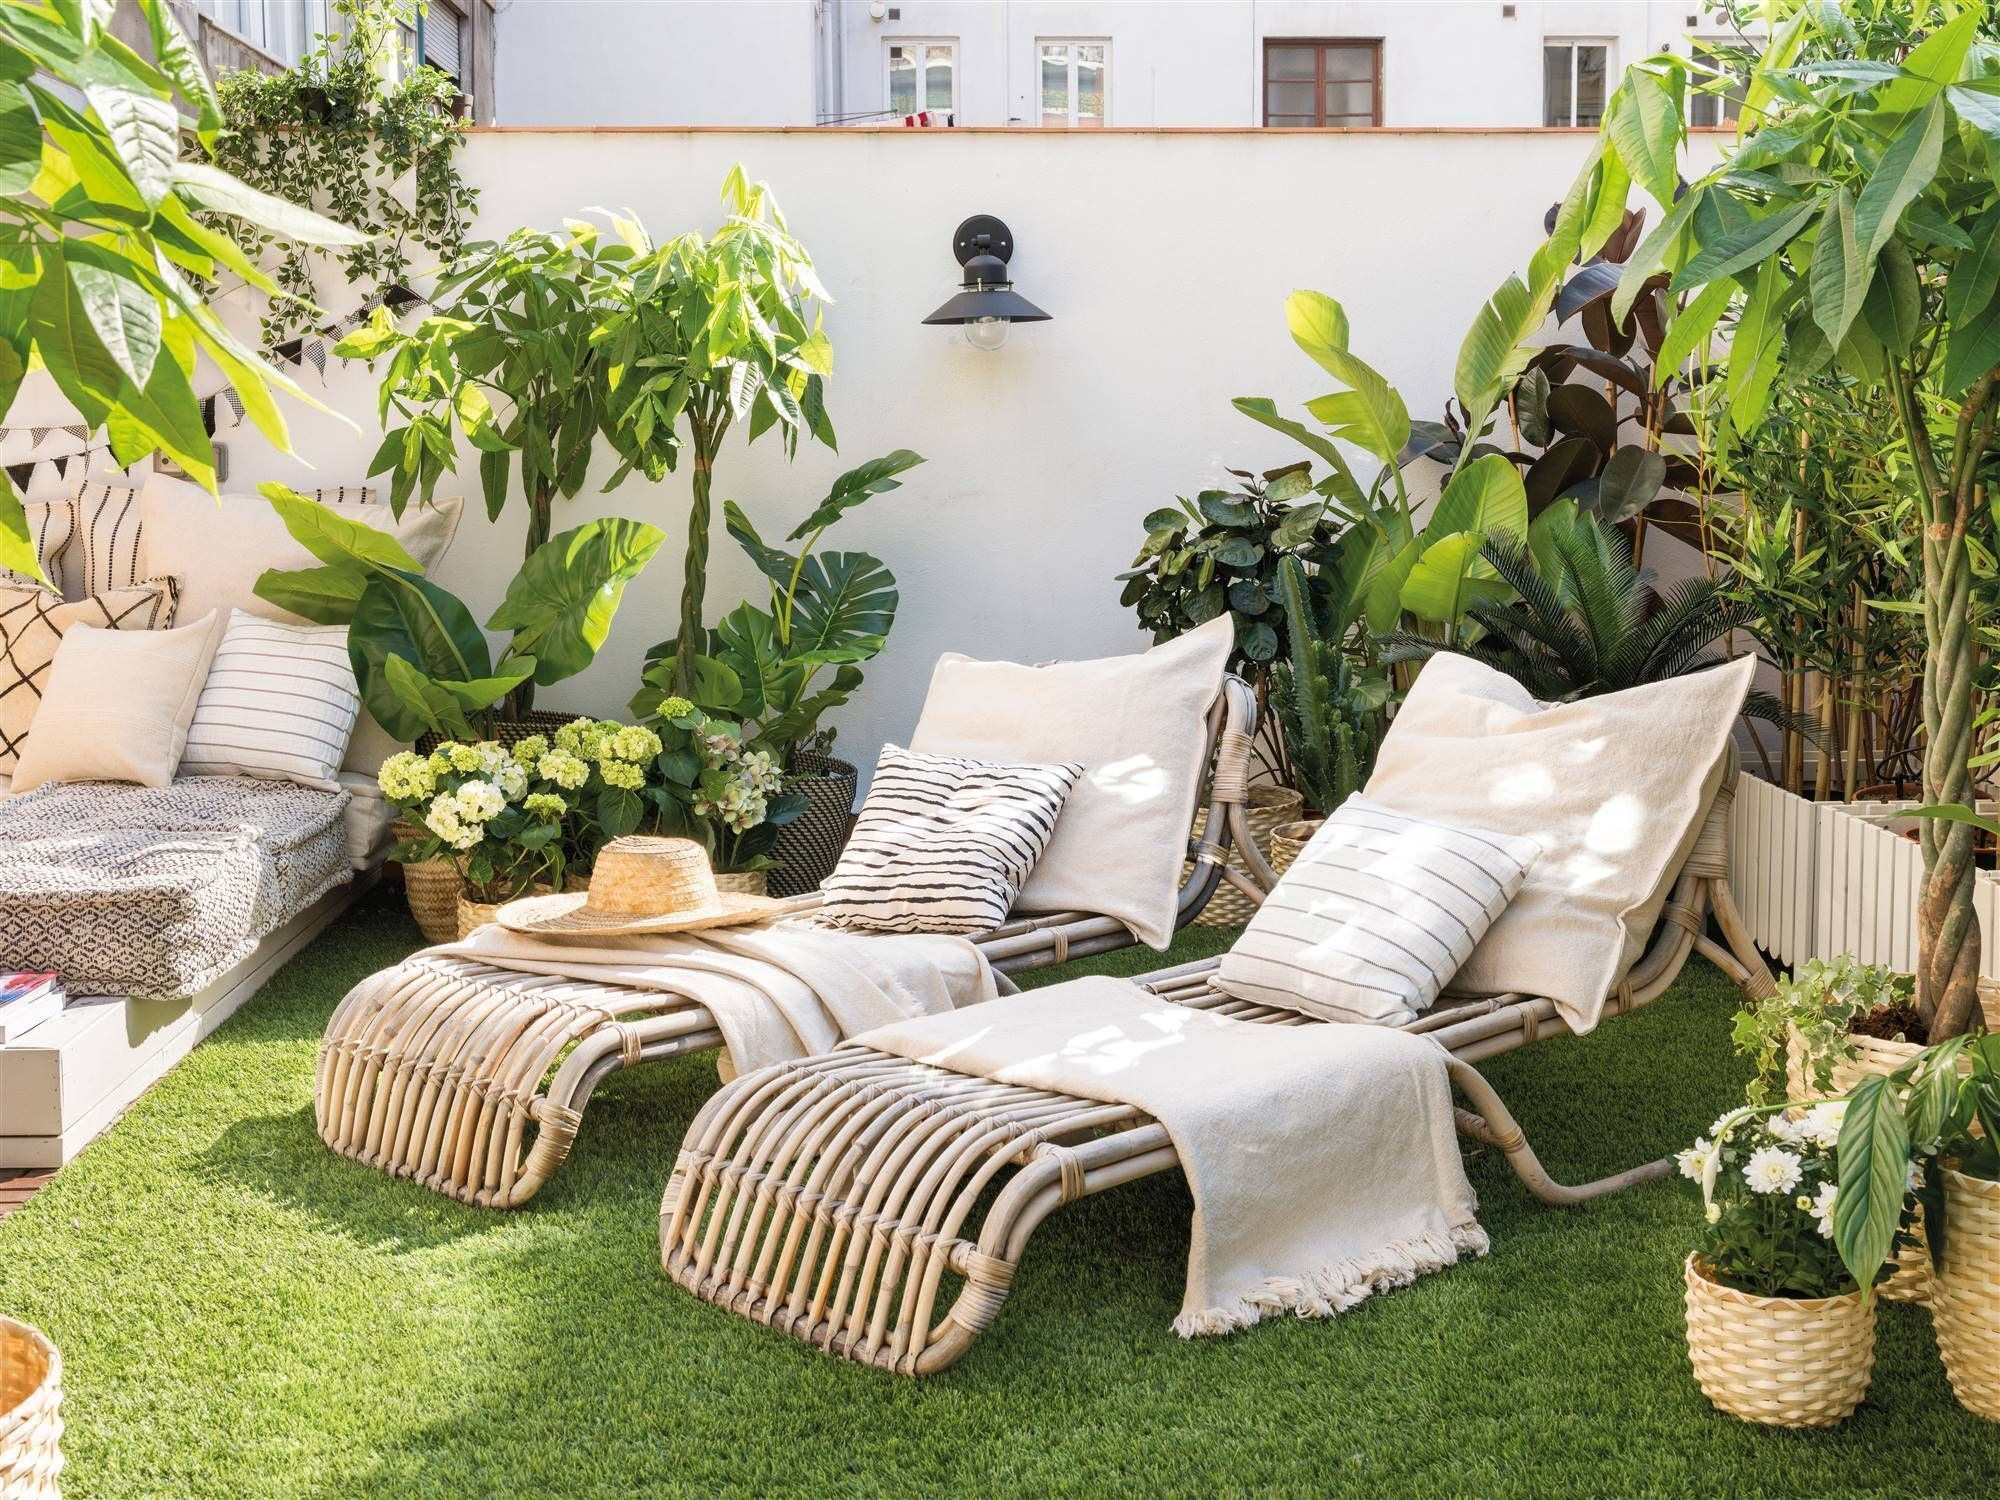 05 -Plants and two sun loungers are enough to weave a lazy spirit